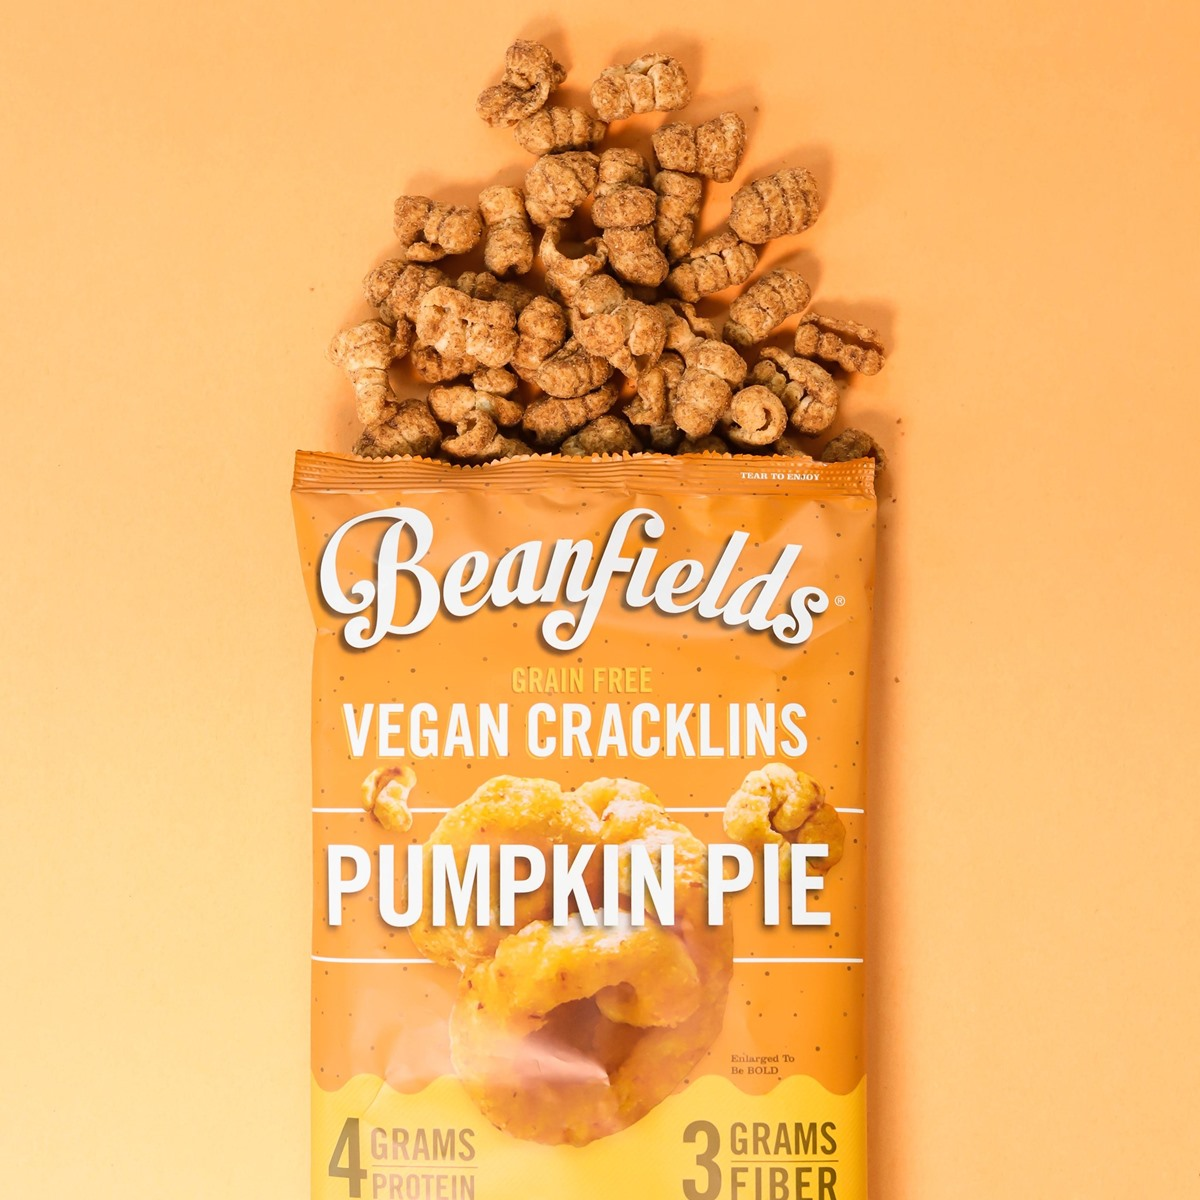 Over 60 Dairy-Free Pumpkin Spice Sweets, Snacks, and More! Pictured: Beanfields Pumpkin Pie Cracklins